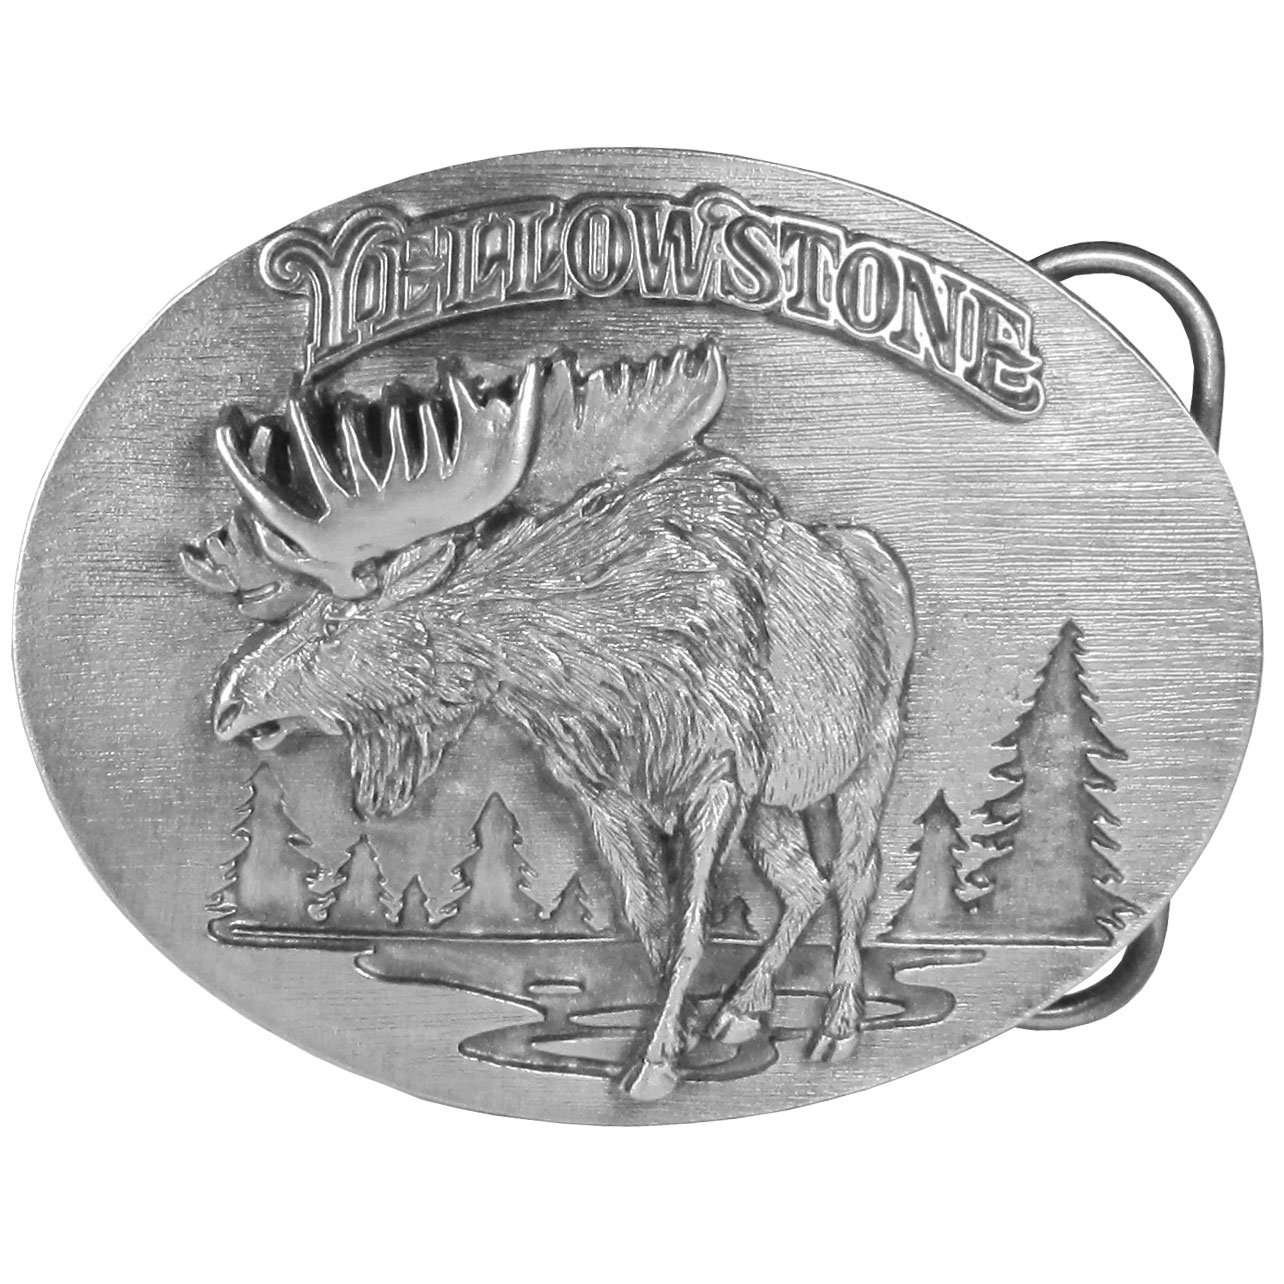 Yellowstone Antiqued Belt Buckle - Finely sculpted and intricately designed belt buckle. Our unique designs often become collector's items.